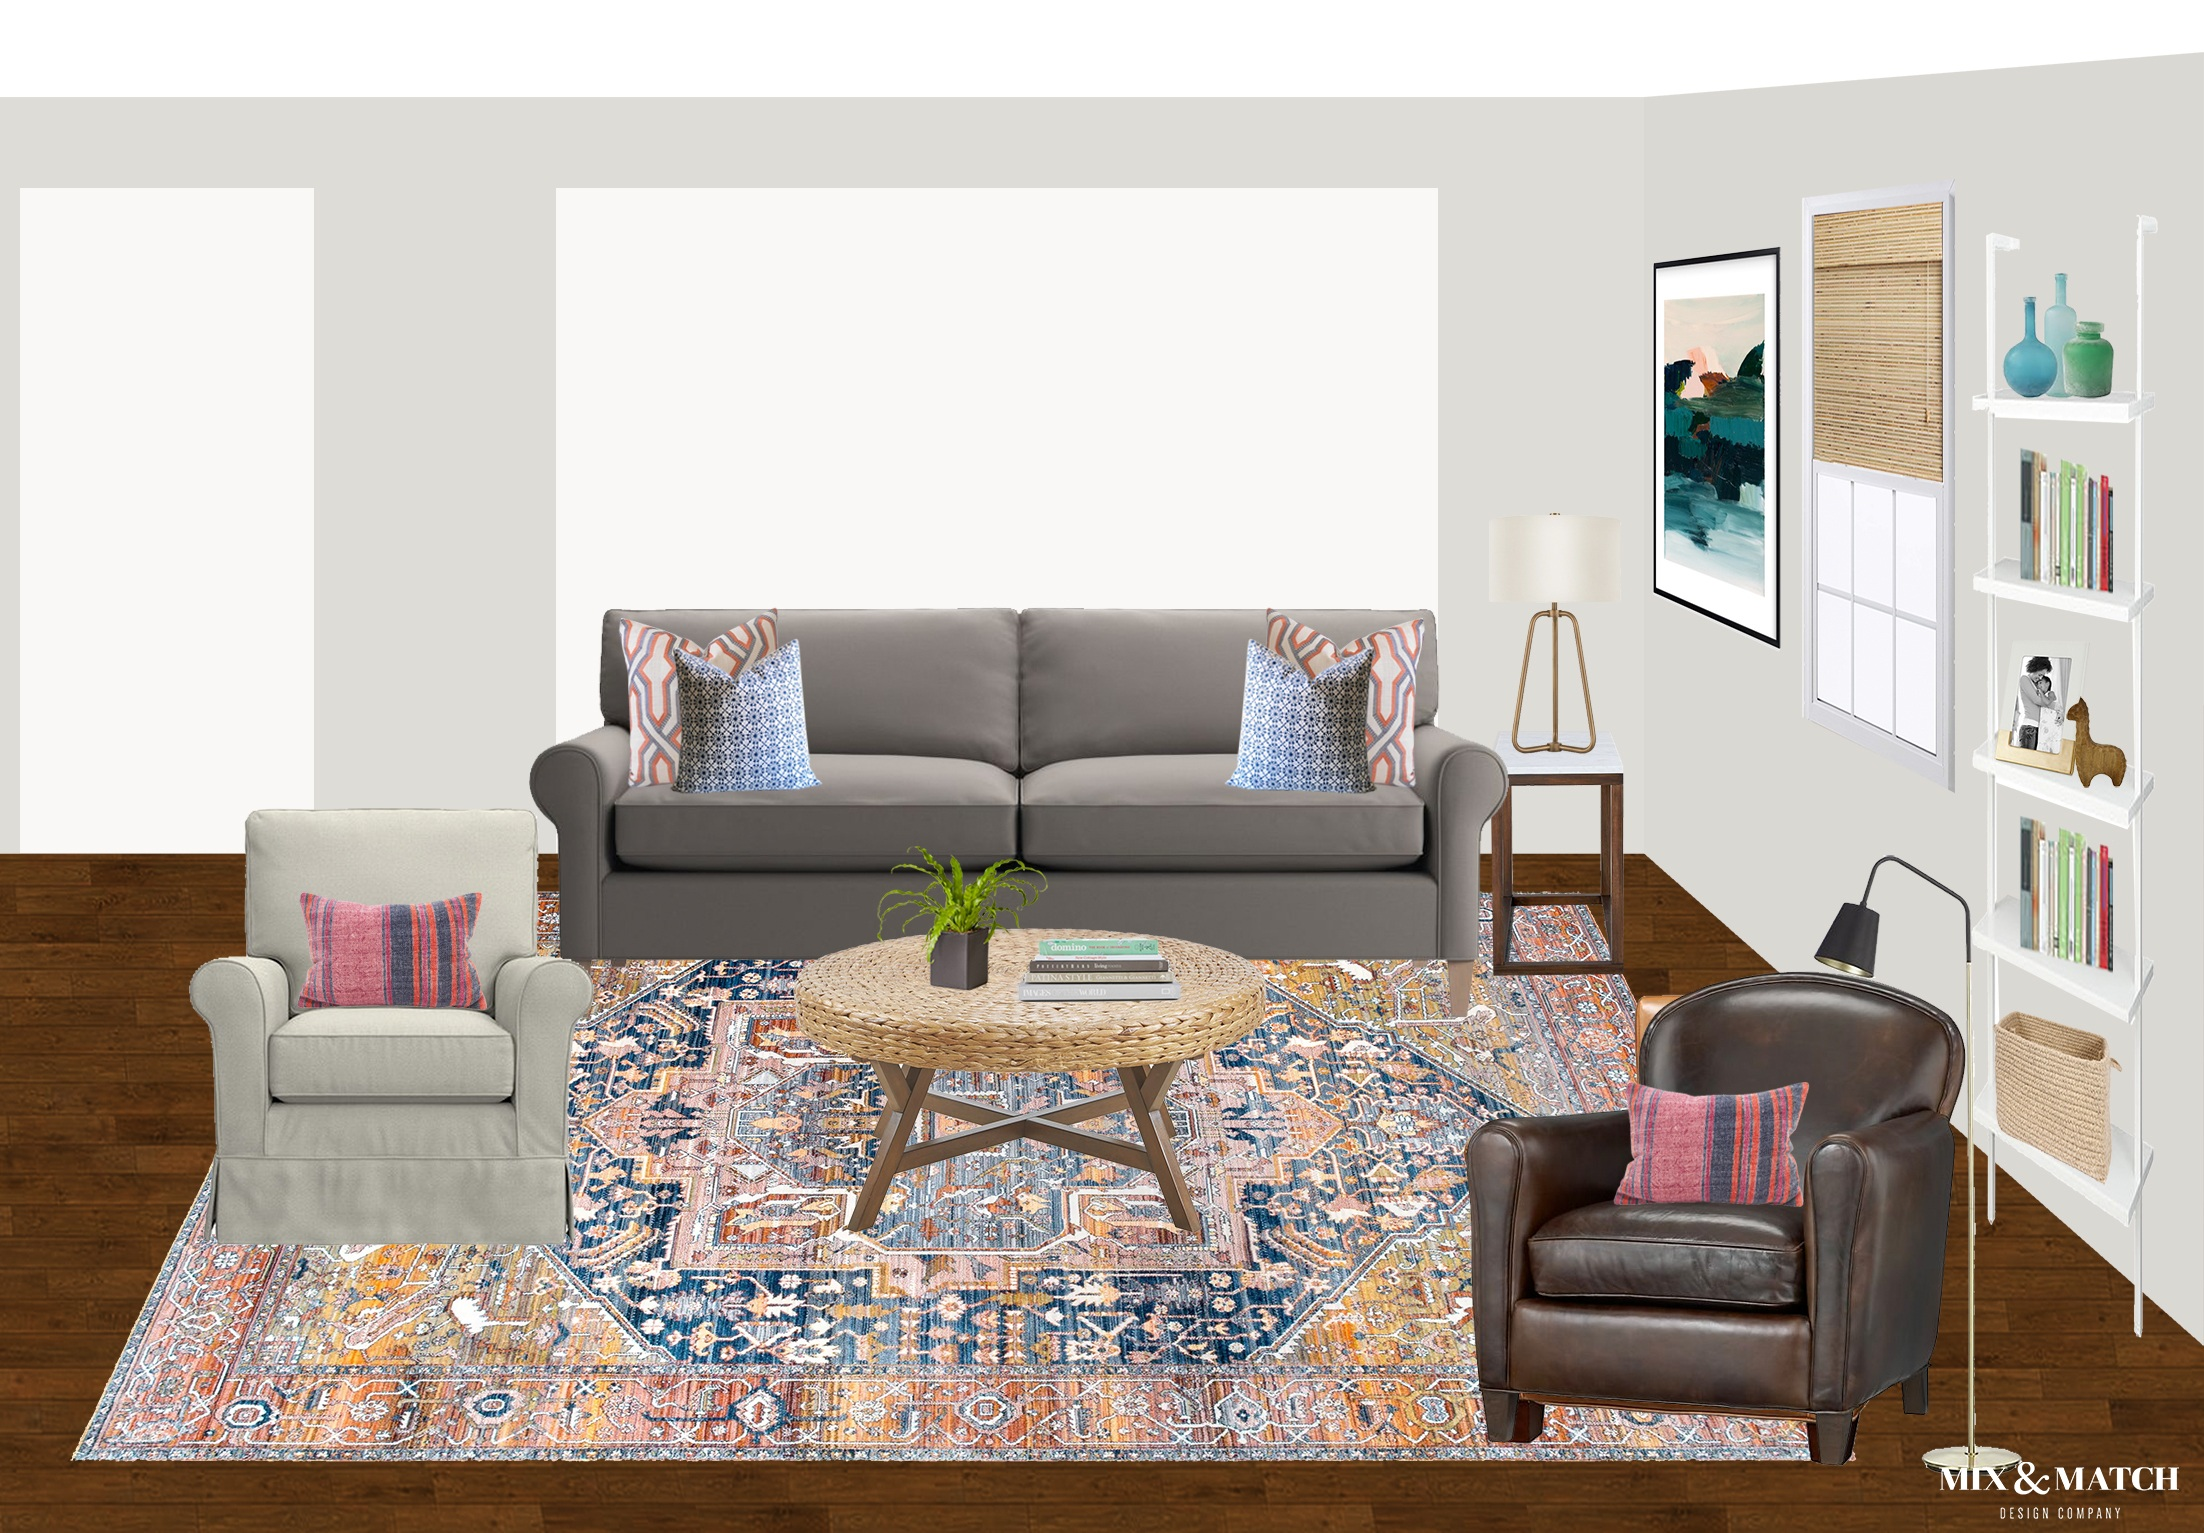 Are you redecorating your home in 2019? Let's chat! My approachable and affordable e-design packages might be just the right fit. Get the design help you need from Mix & Match Design Company's virtual interior design services and turn your home into a space you love! // eclectic transitional living room, boho transitional living room, vintage style rug living room